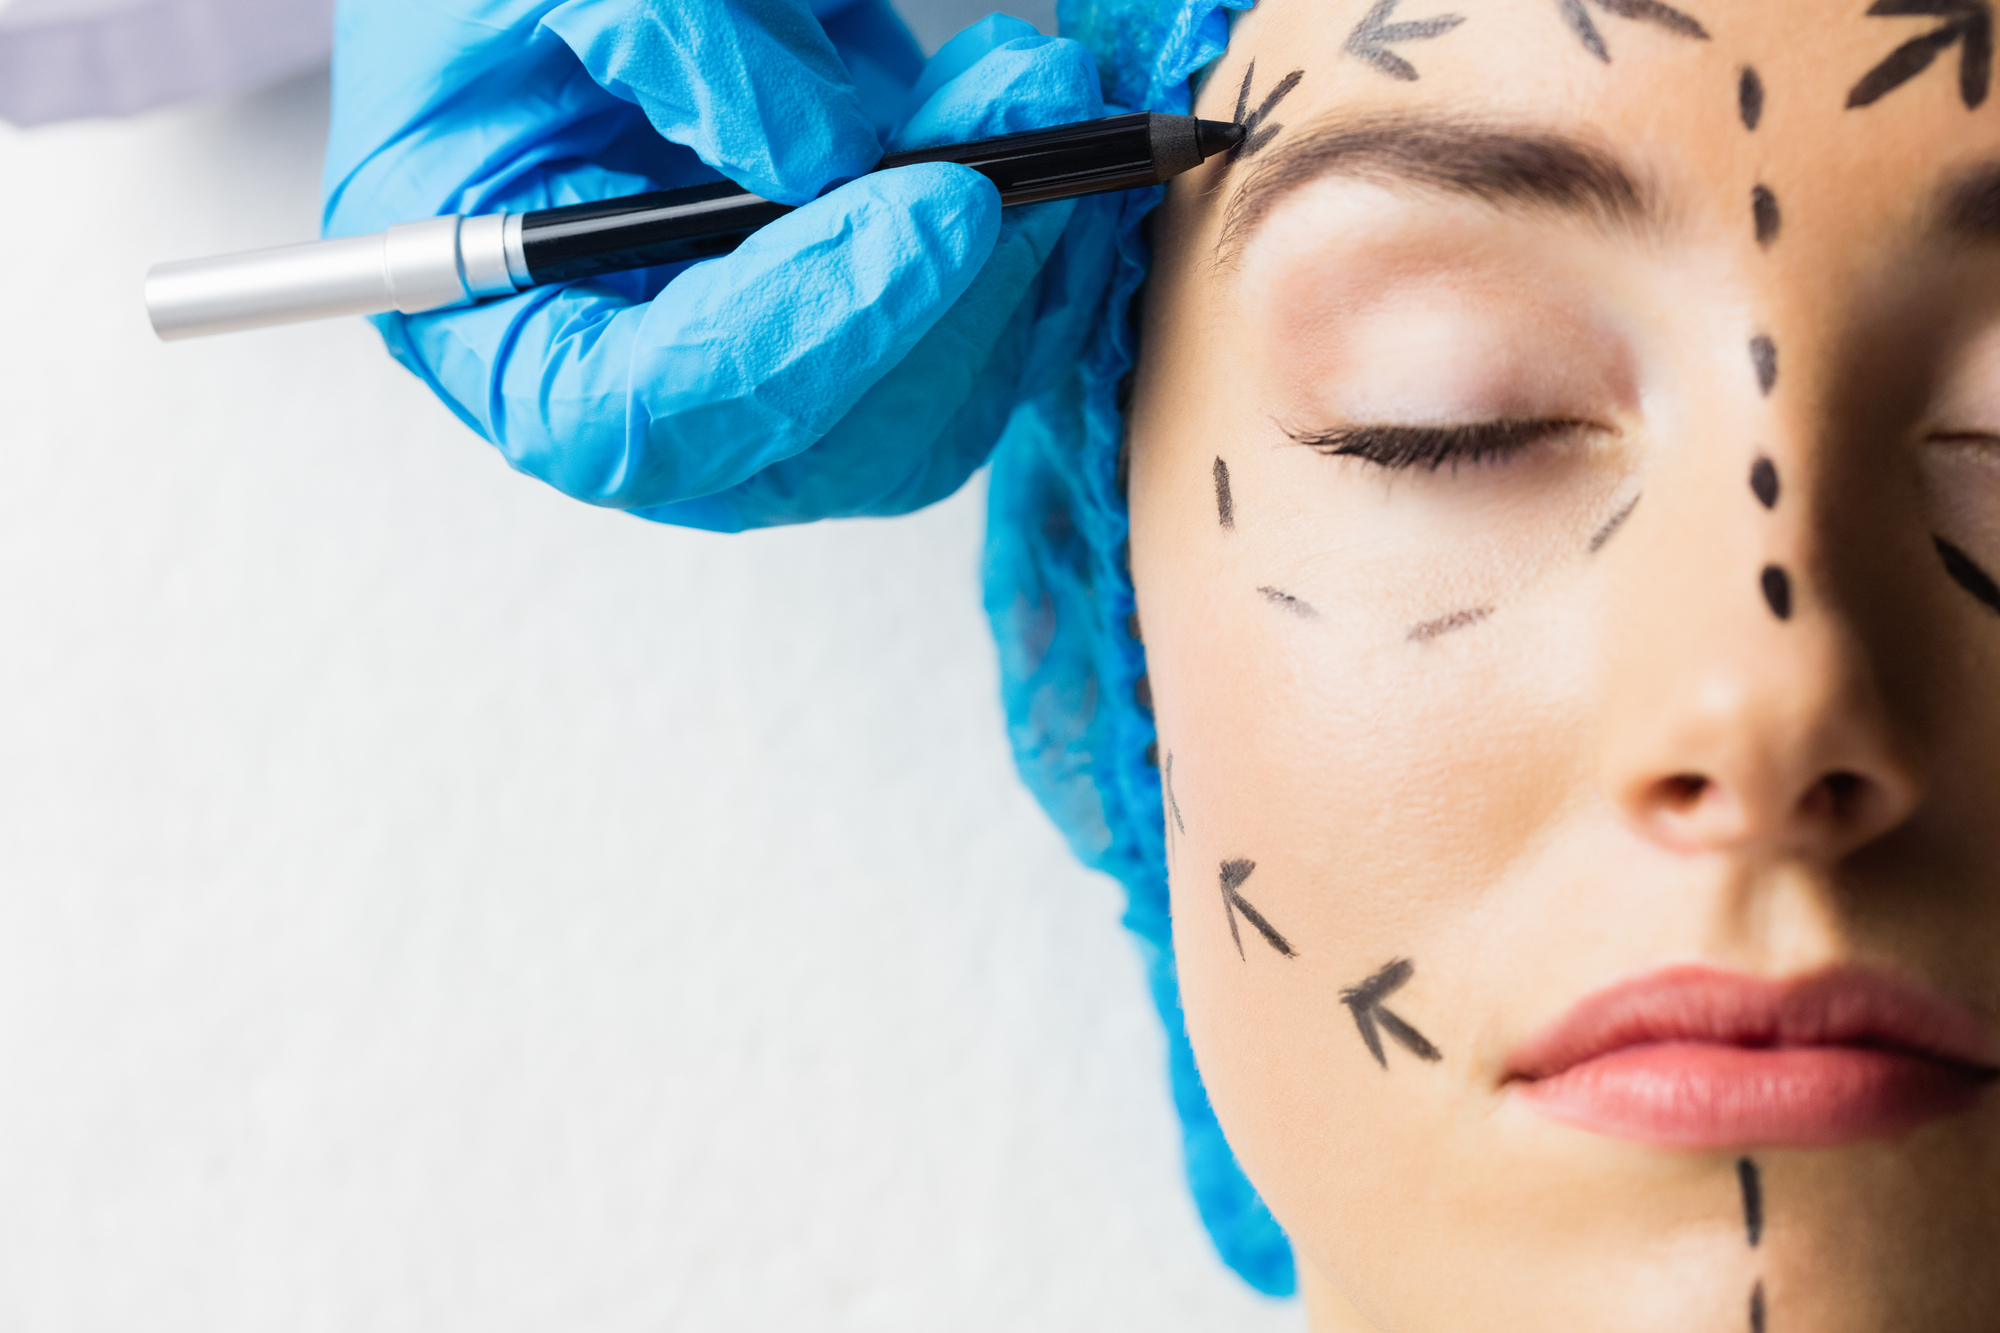 Cosmetic Surgery - Why Is Cosmetic Surgery So Popular